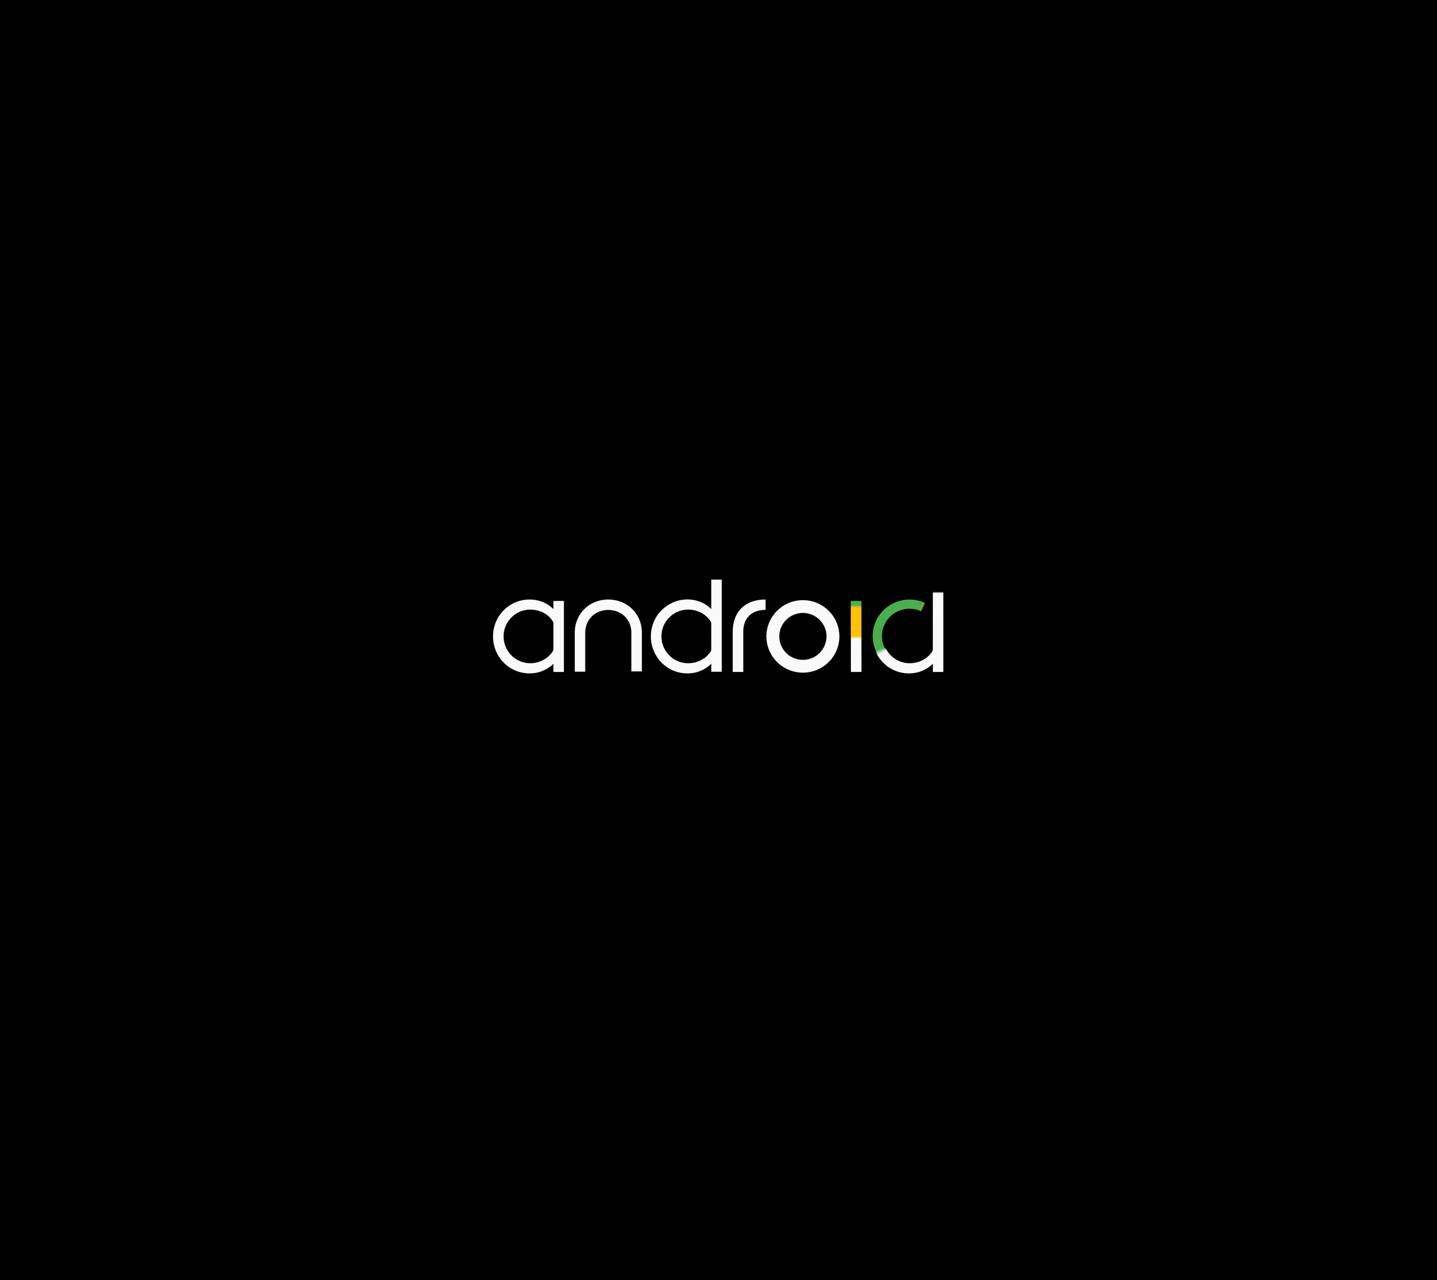 android m boot logo